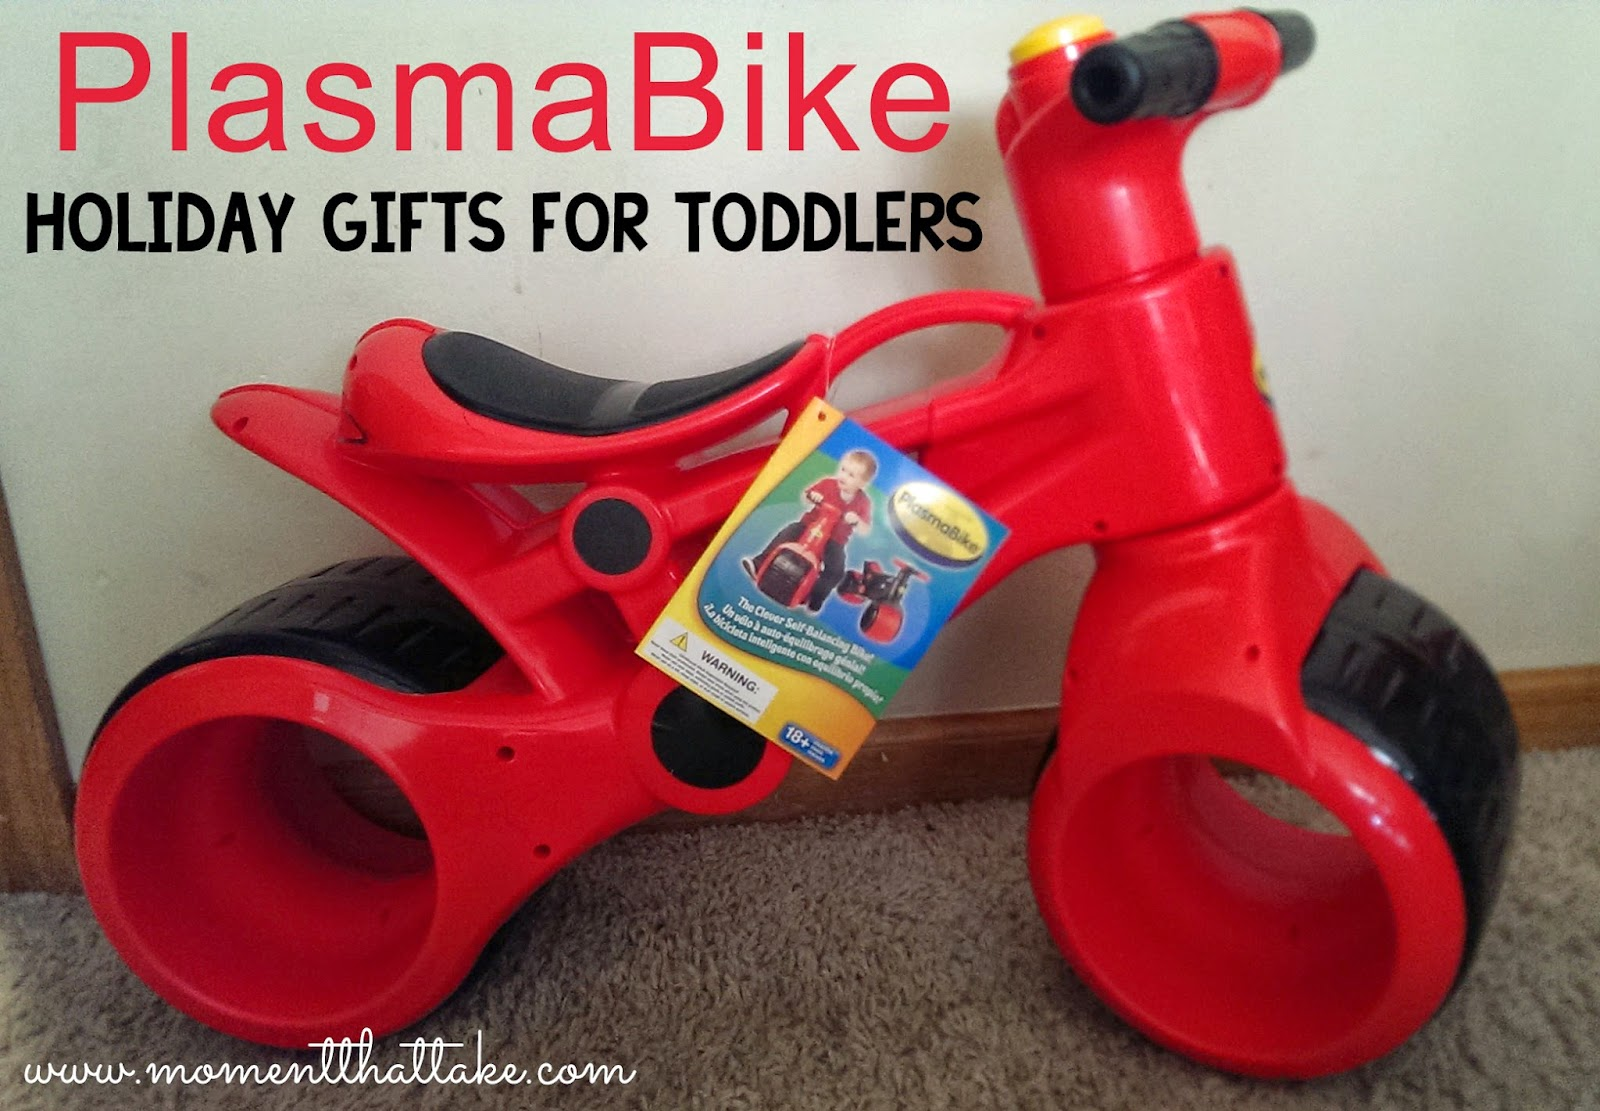 PlasmaBike: The perfect gift for an active toddler!